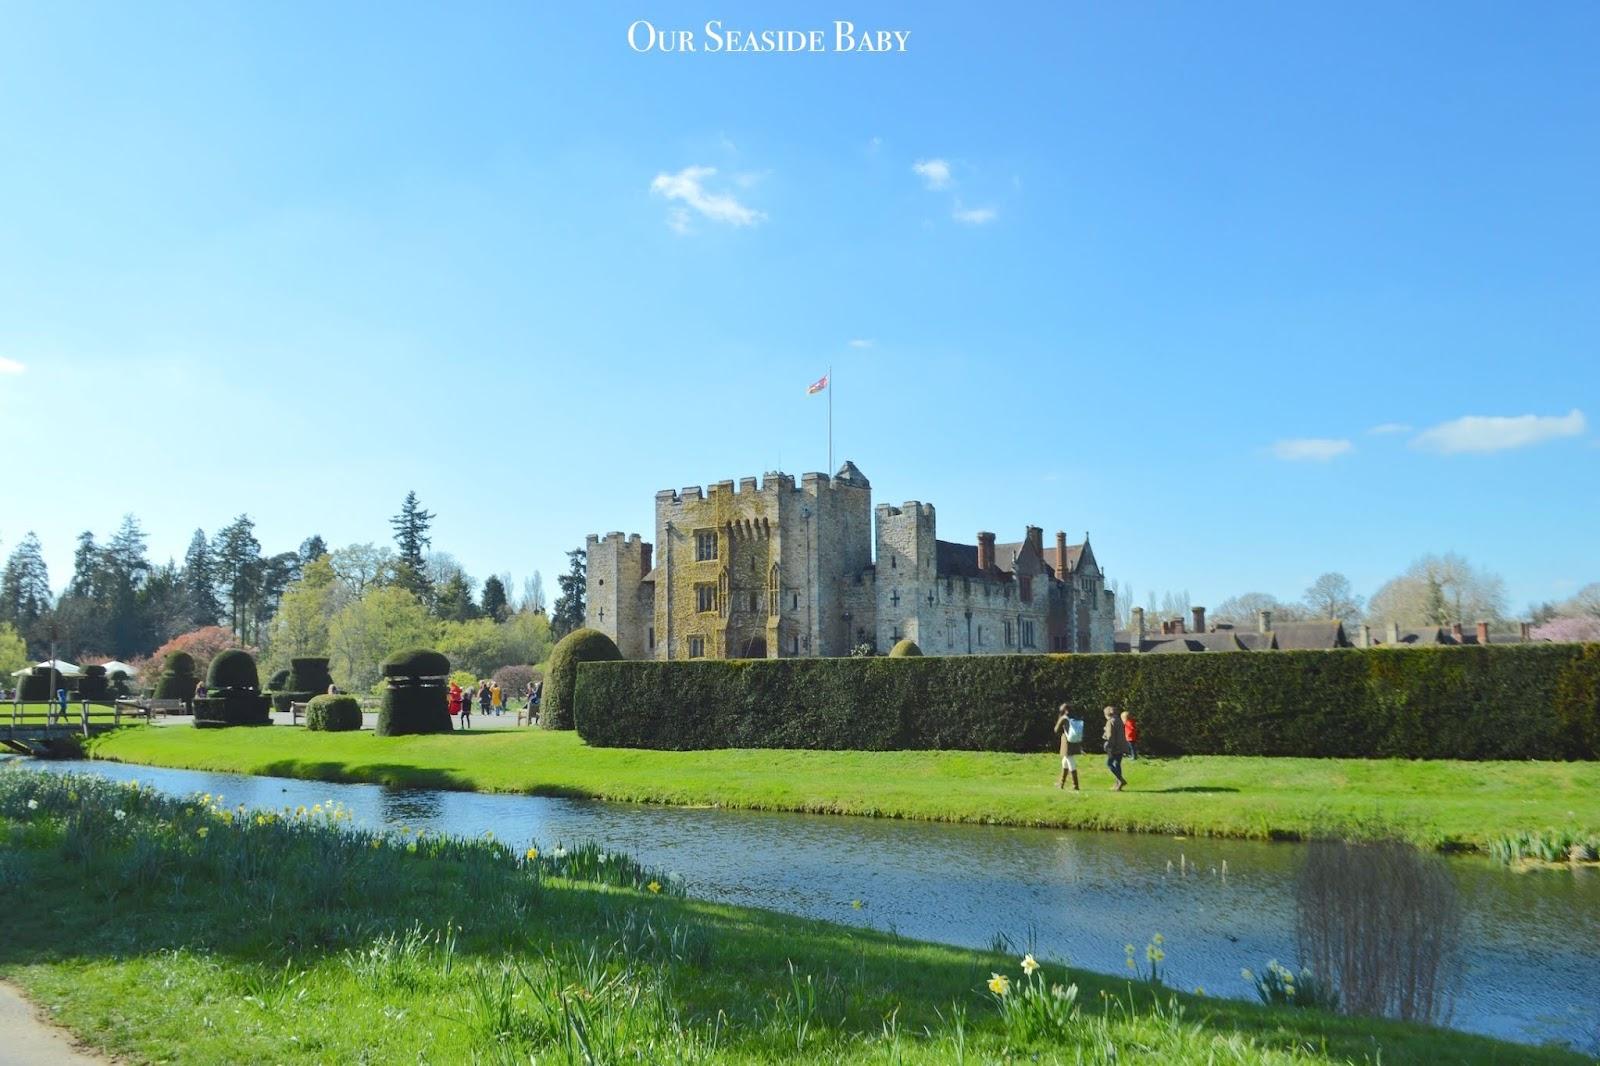 A family day out at Hever Castle & Gardens